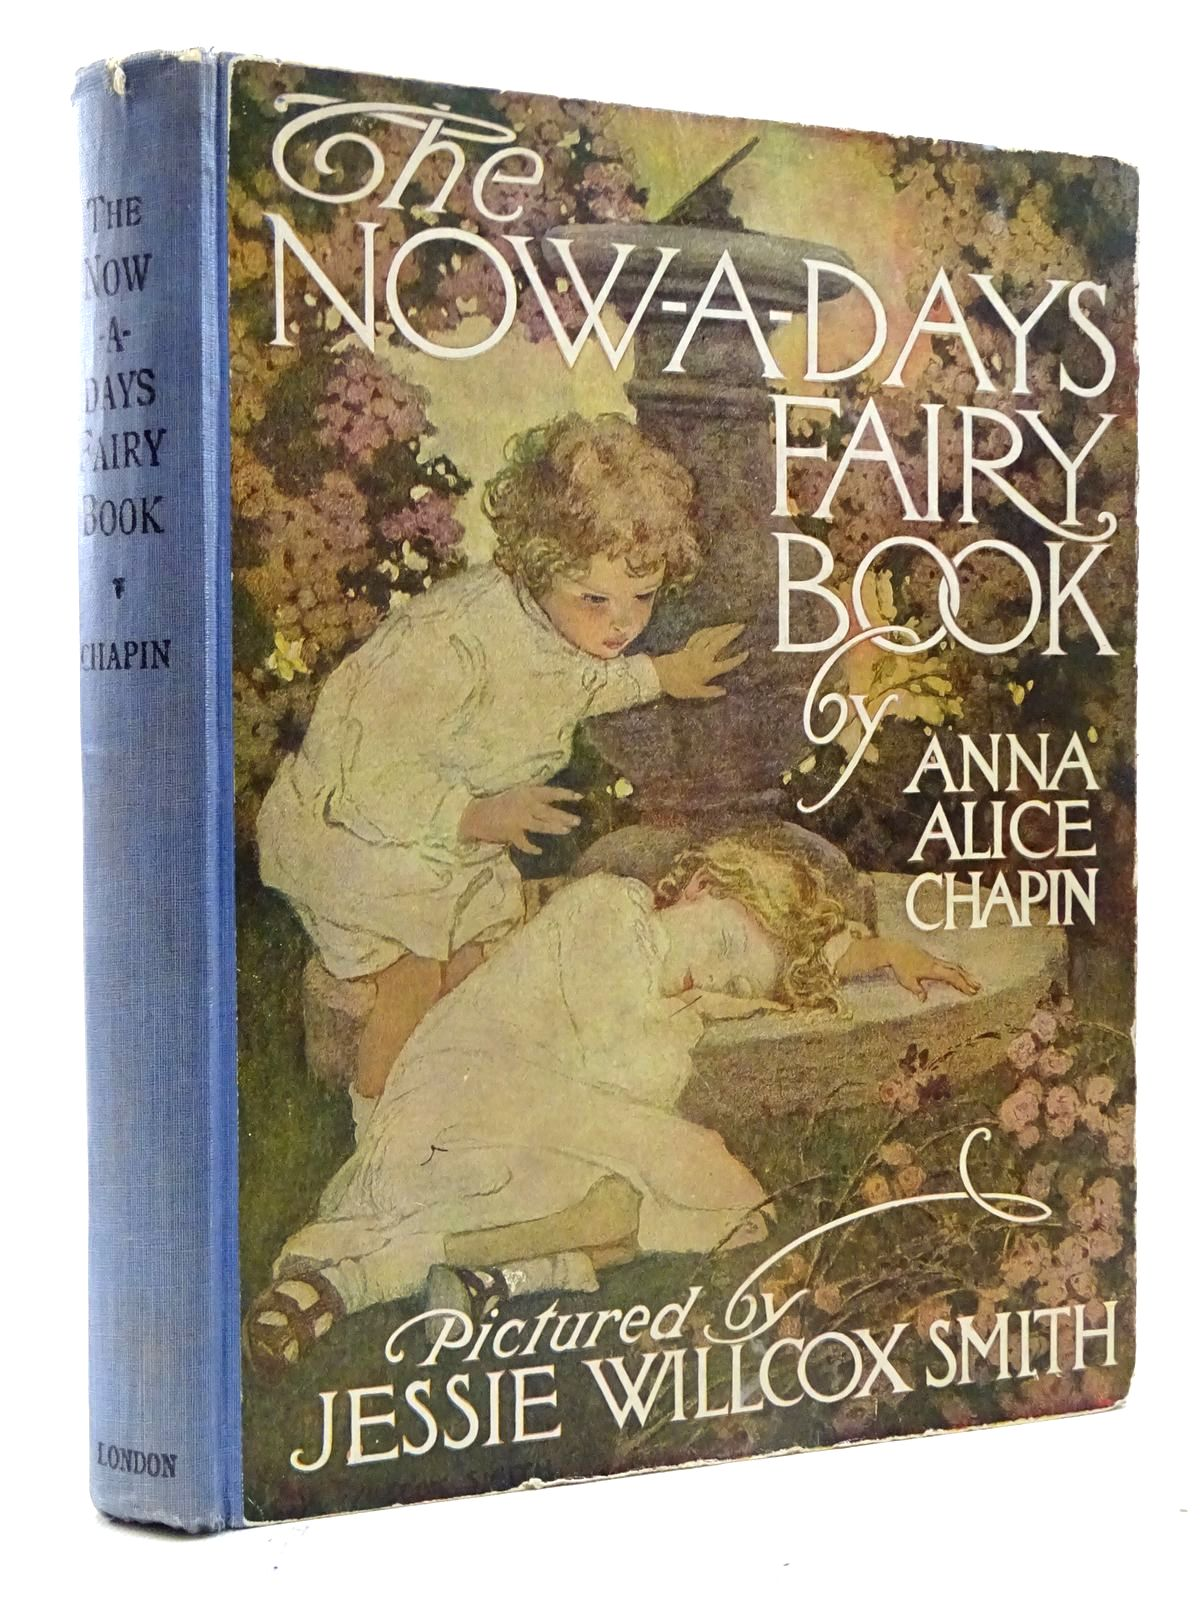 Photo of THE NOW-A-DAYS FAIRY BOOK written by Chapin, Anna Alice illustrated by Smith, Jessie Willcox published by J. Coker & Co. Ltd. (STOCK CODE: 2125674)  for sale by Stella & Rose's Books